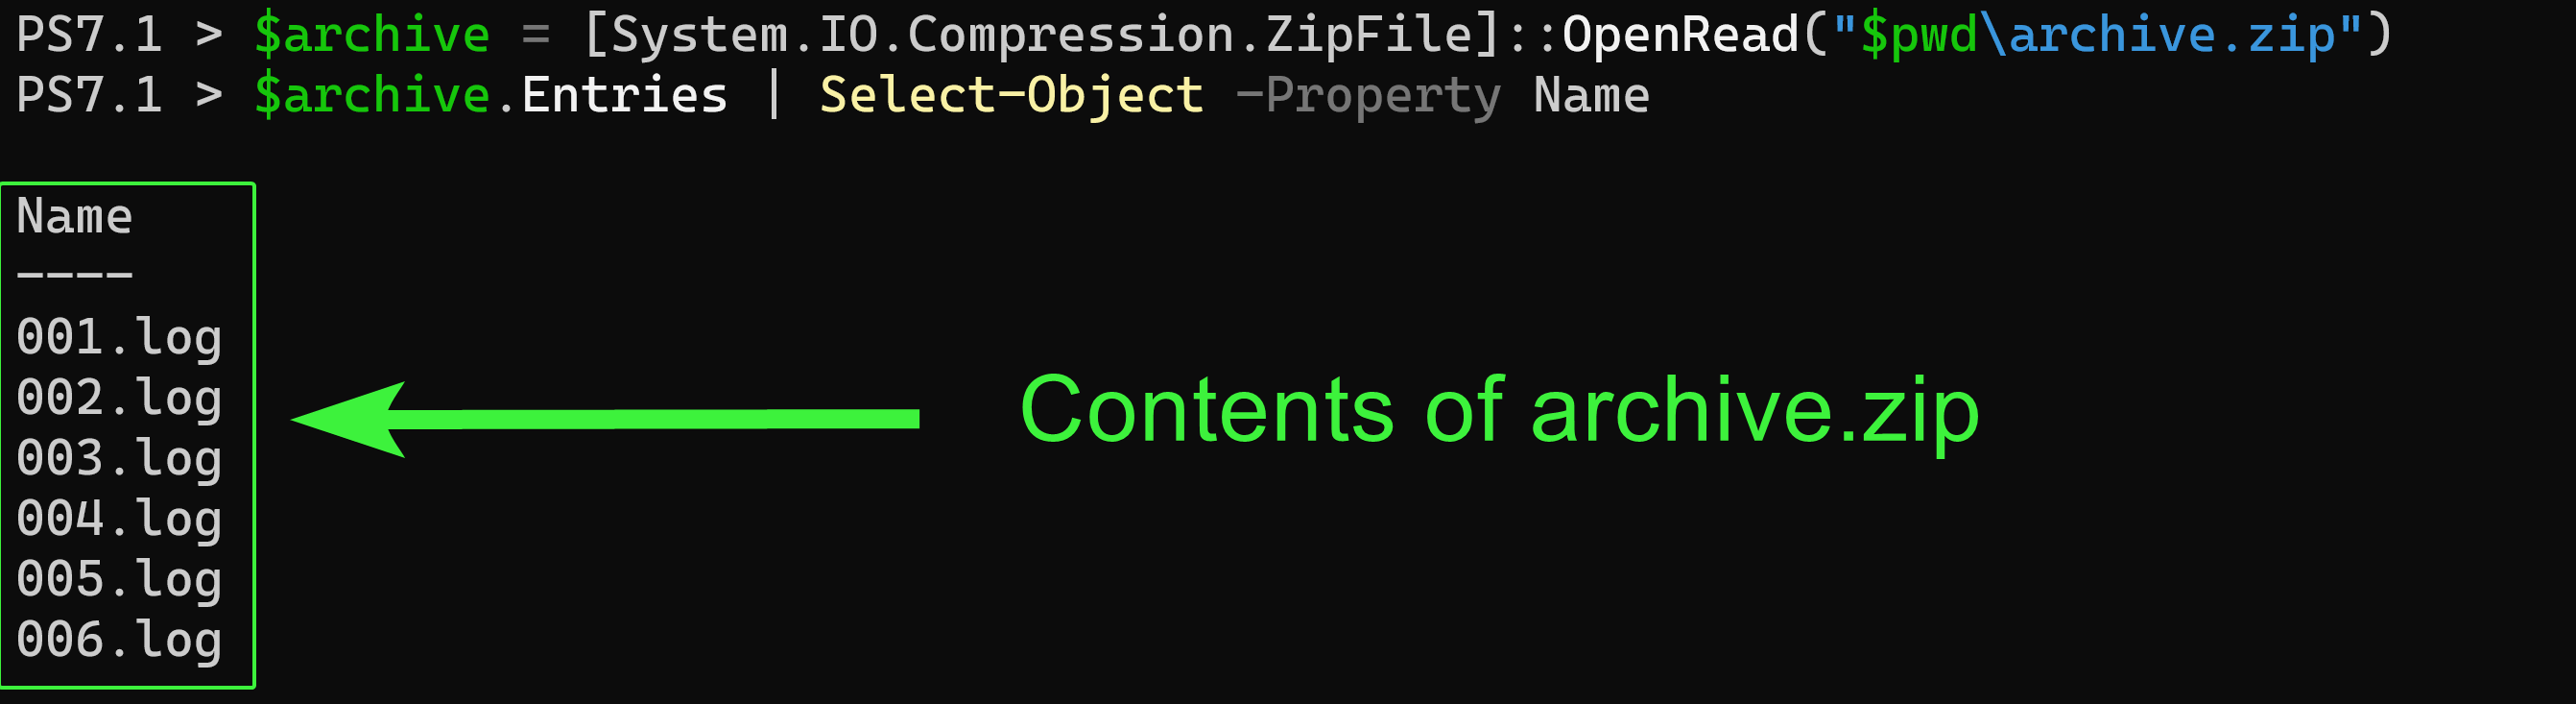 Listing Compressed Files by Name without Extracting Them